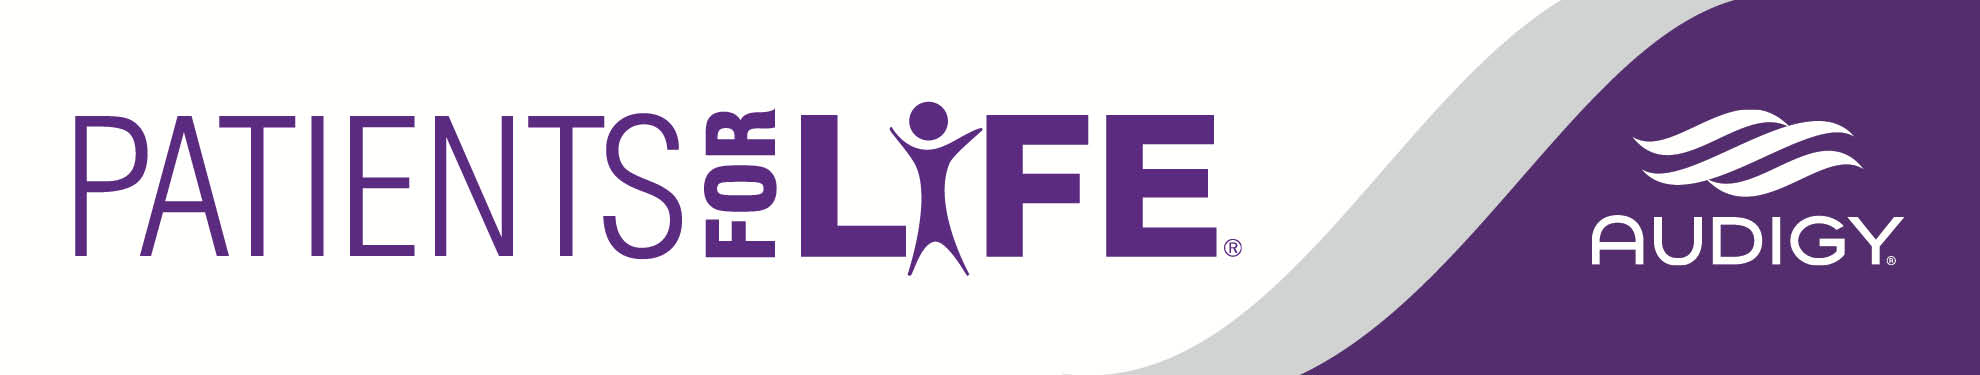 Patients for Life | June 23-24, 2017